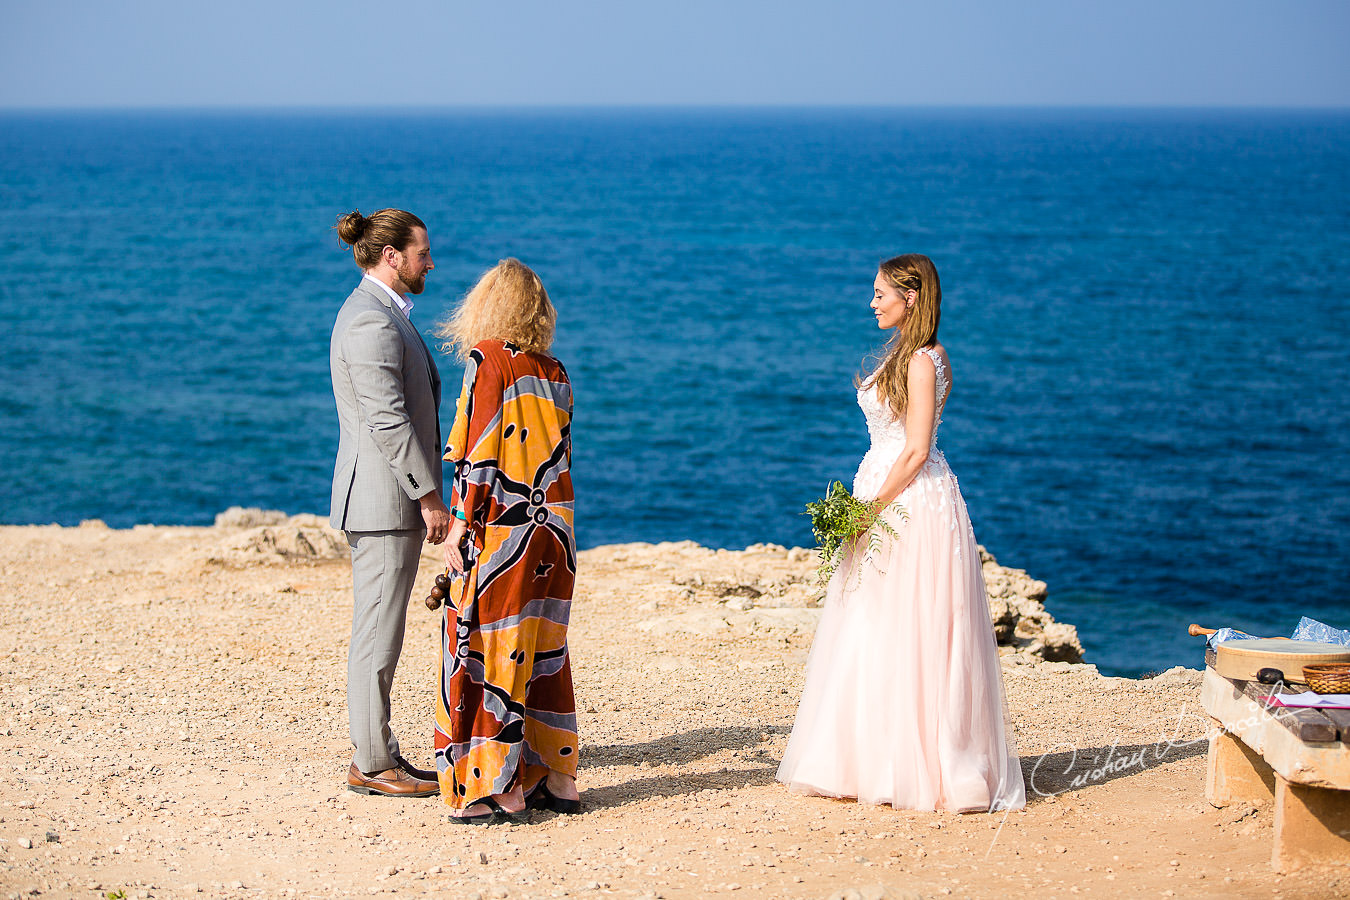 The shaman blessing the bride, moments captured by Cyprus Wedding Photographer Cristian Dascalu.